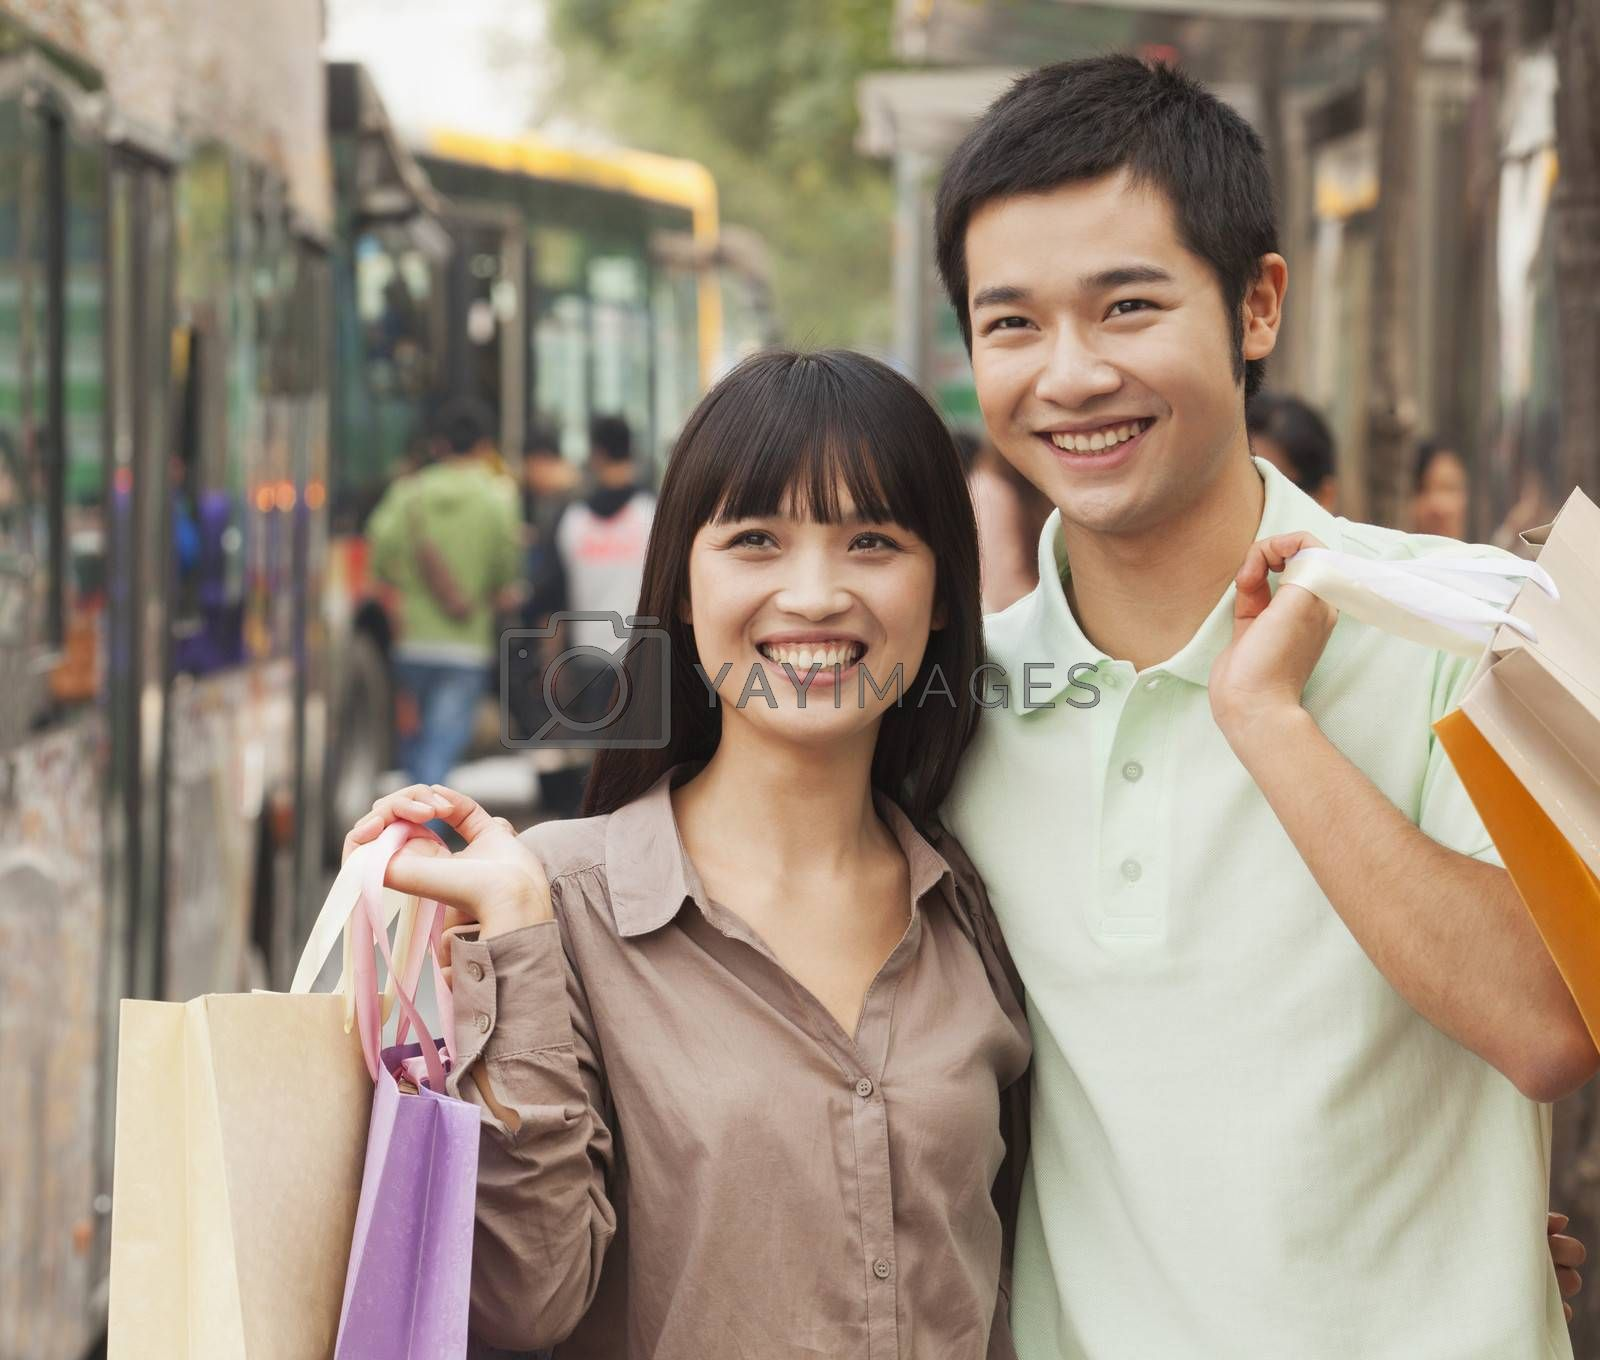 Portrait of smiling young couple at the bus stop, Beijing, China